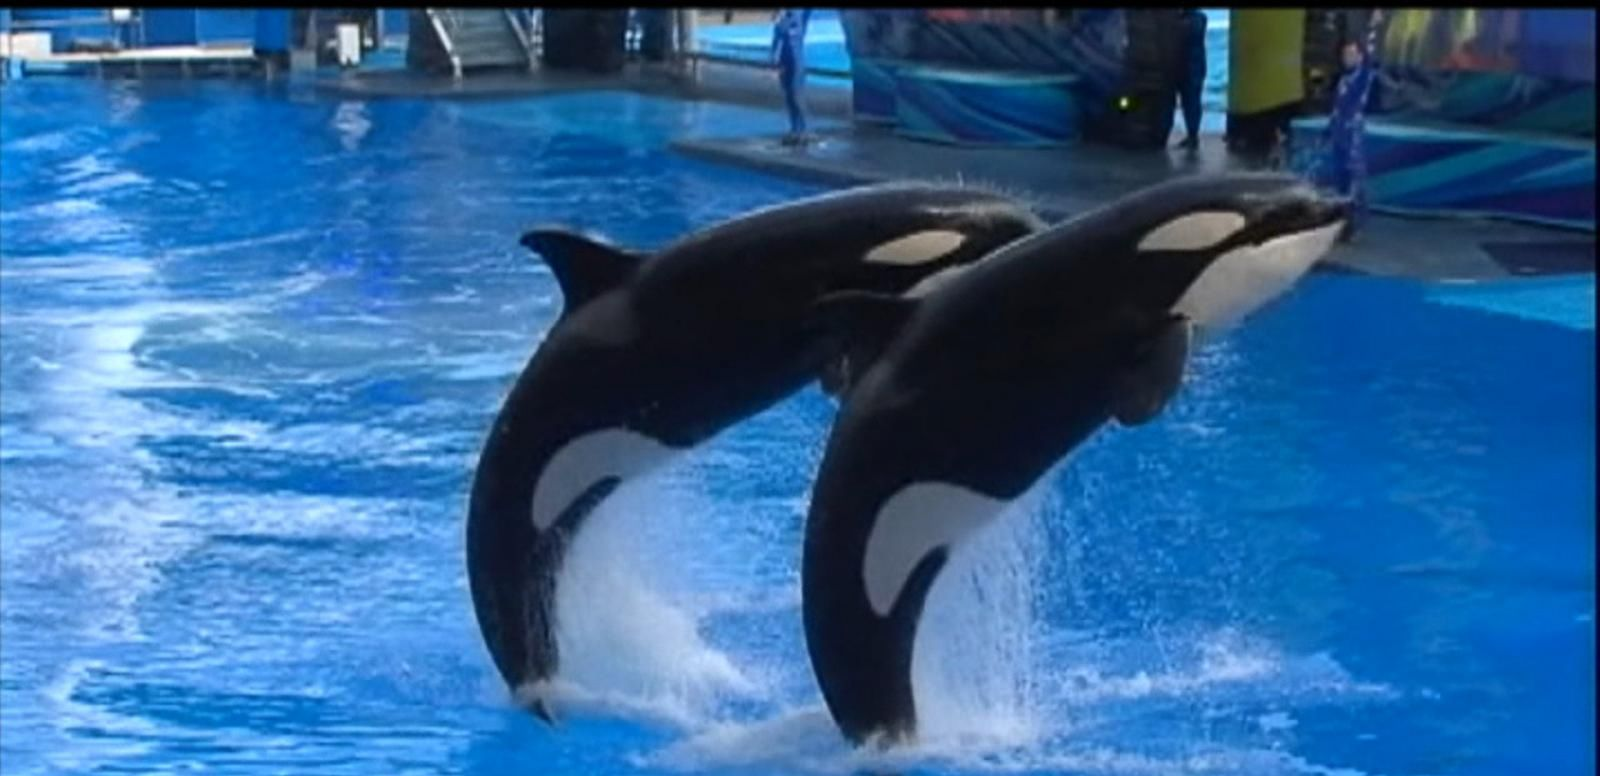 VIDEO: Controversy Ignites As SeaWorld Tries To Build Bigger Tanks for Its Killer Whales